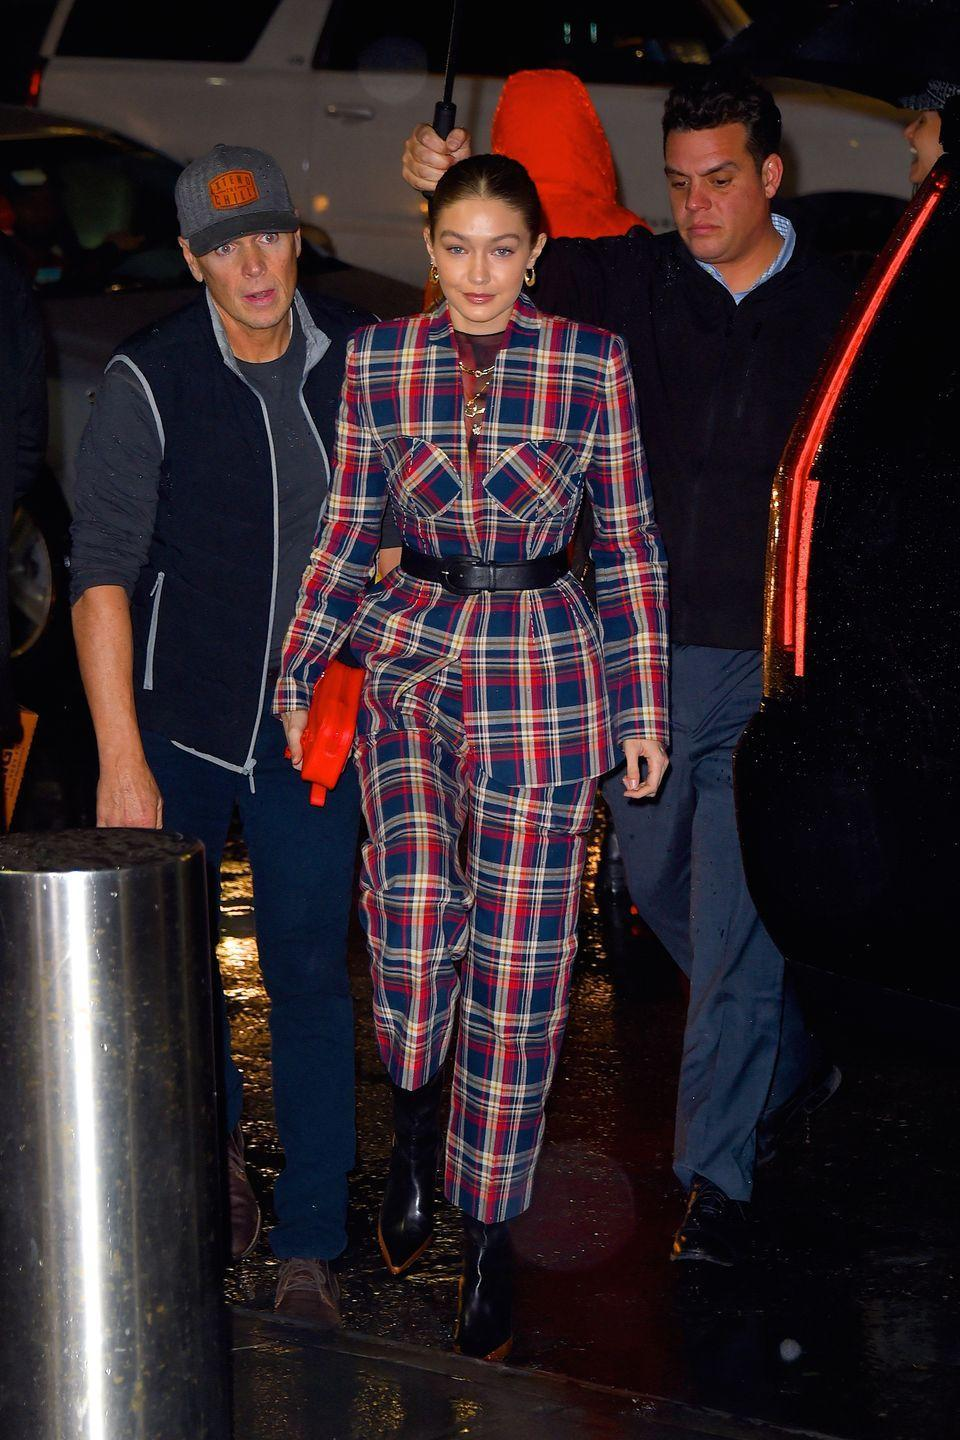 """<p>In a tartan suit by Esau Yori, ankle boots by <a href=""""https://www.farfetch.com/shopping/women/wandler-bente-ankle-boots-item-14119527.aspx"""" rel=""""nofollow noopener"""" target=""""_blank"""" data-ylk=""""slk:Wandler"""" class=""""link rapid-noclick-resp"""">Wandler</a>, earrings by Lili Claspe, and a pouch by Louis Vuitton. </p>"""